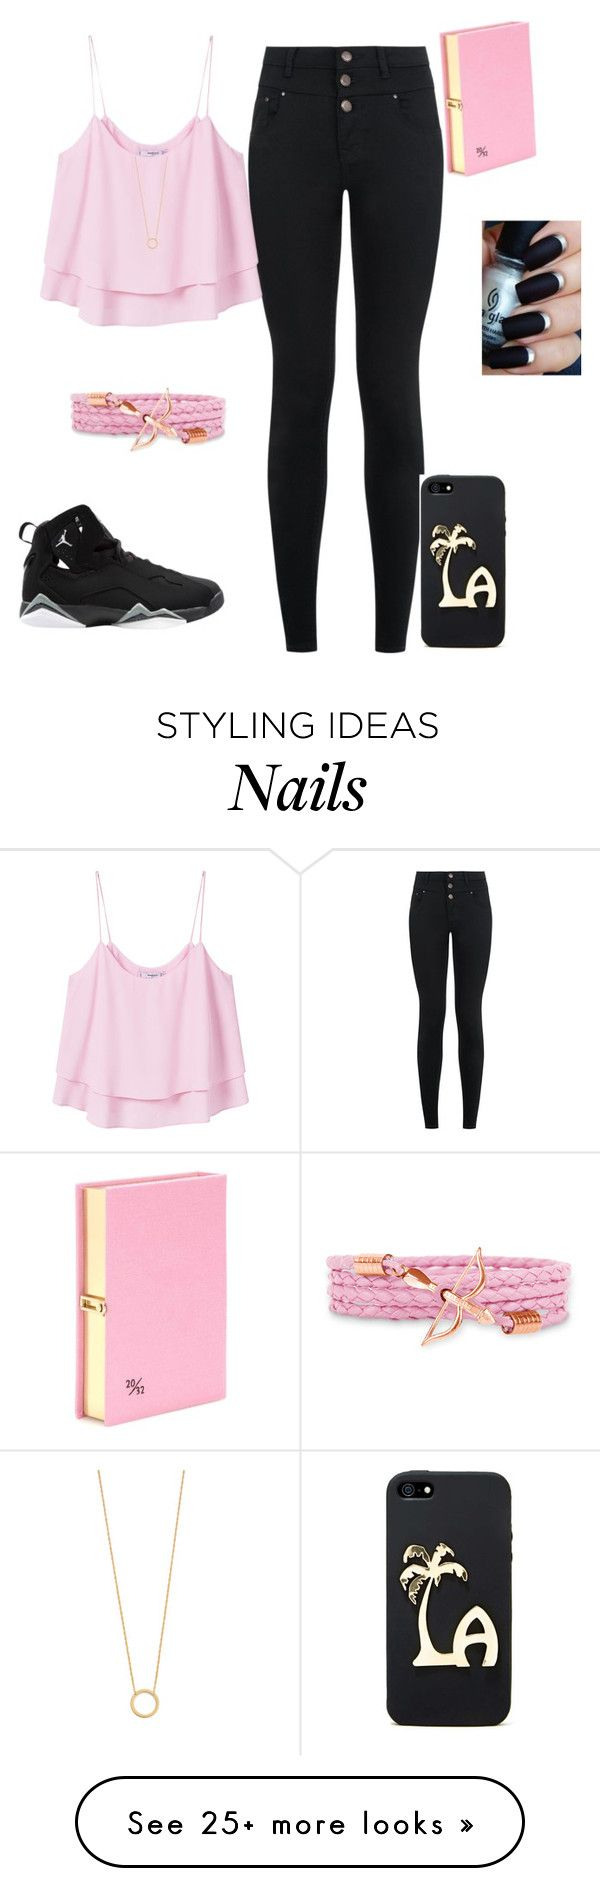 """Hot or nah"" by zabby04 on Polyvore featuring New Look, MANGO, Jennifer Zeuner, Alexia Crawford and Olympia Le-Tan"